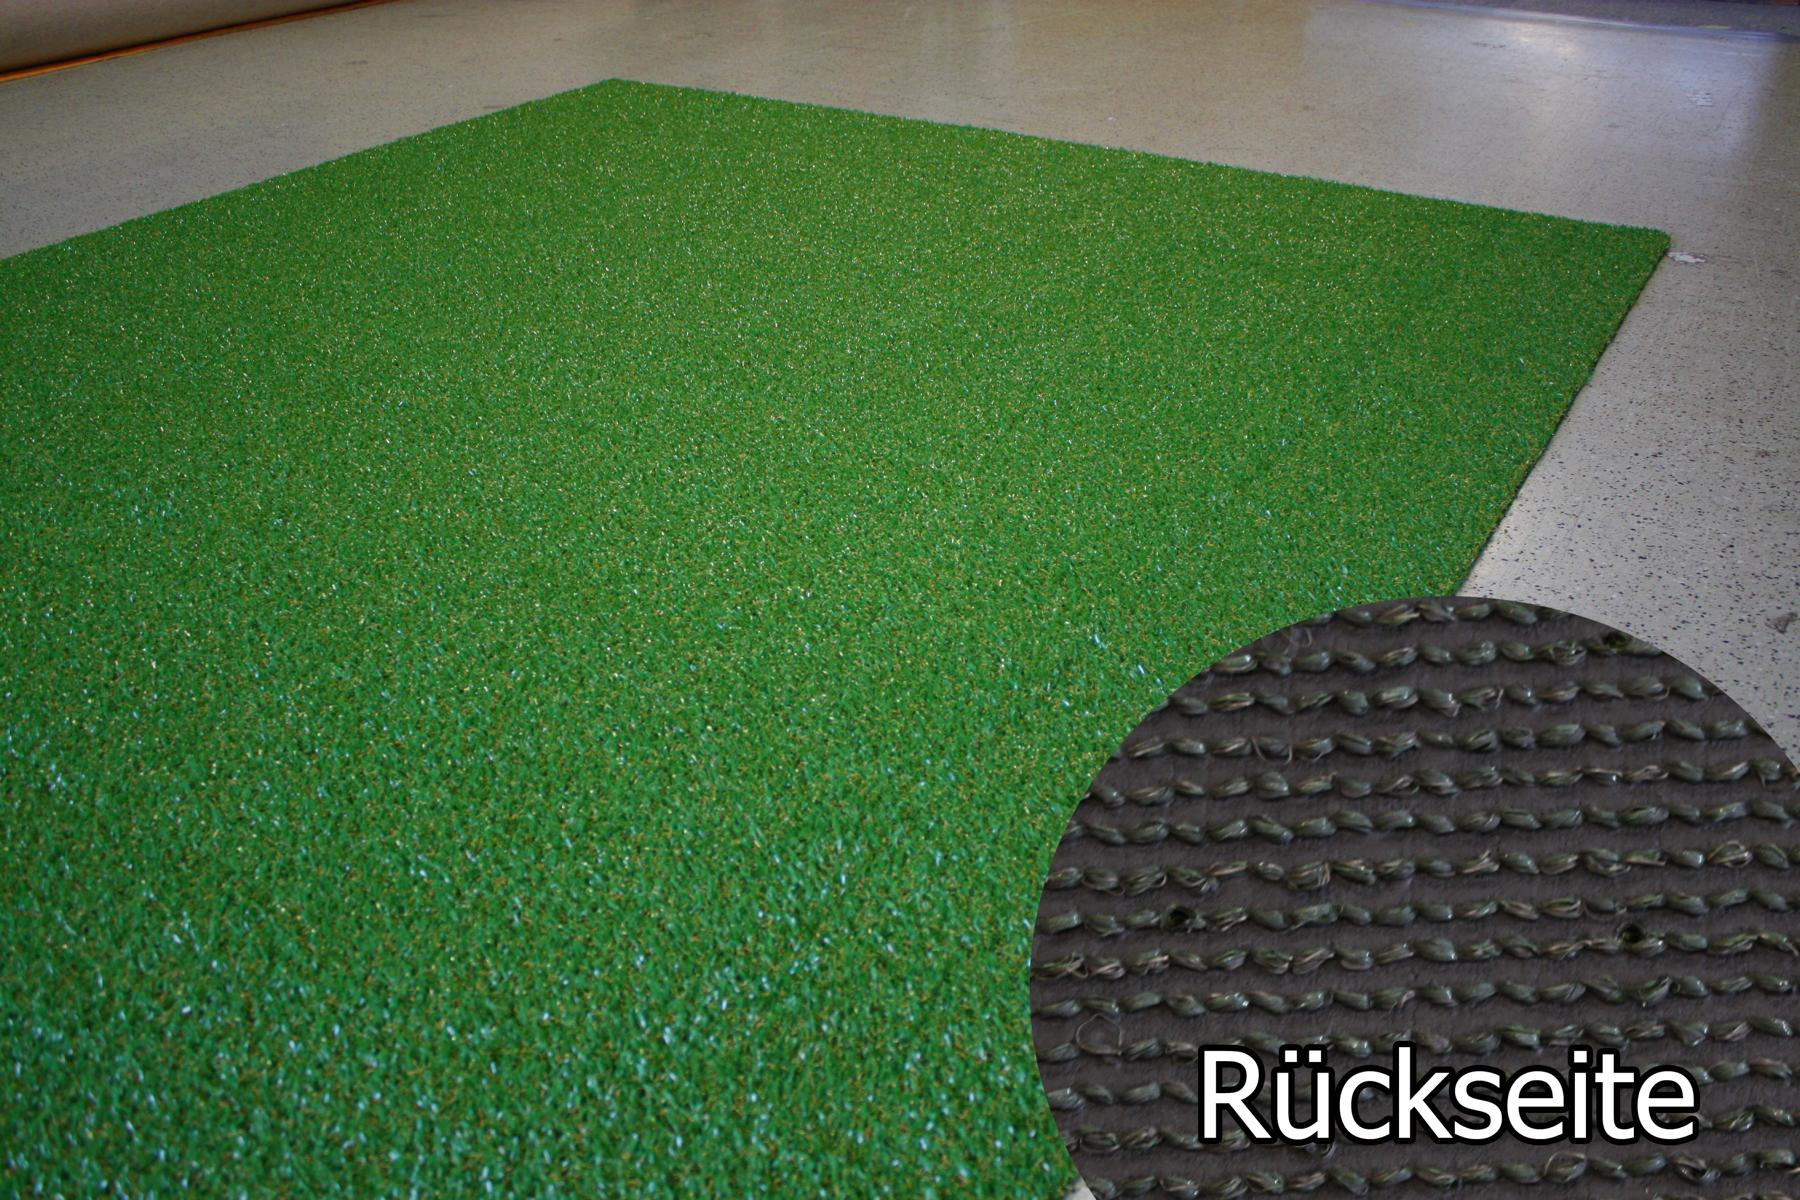 pelouse tapis art pelouse 15 mm tuftrasen vert 400x410 cm ebay. Black Bedroom Furniture Sets. Home Design Ideas